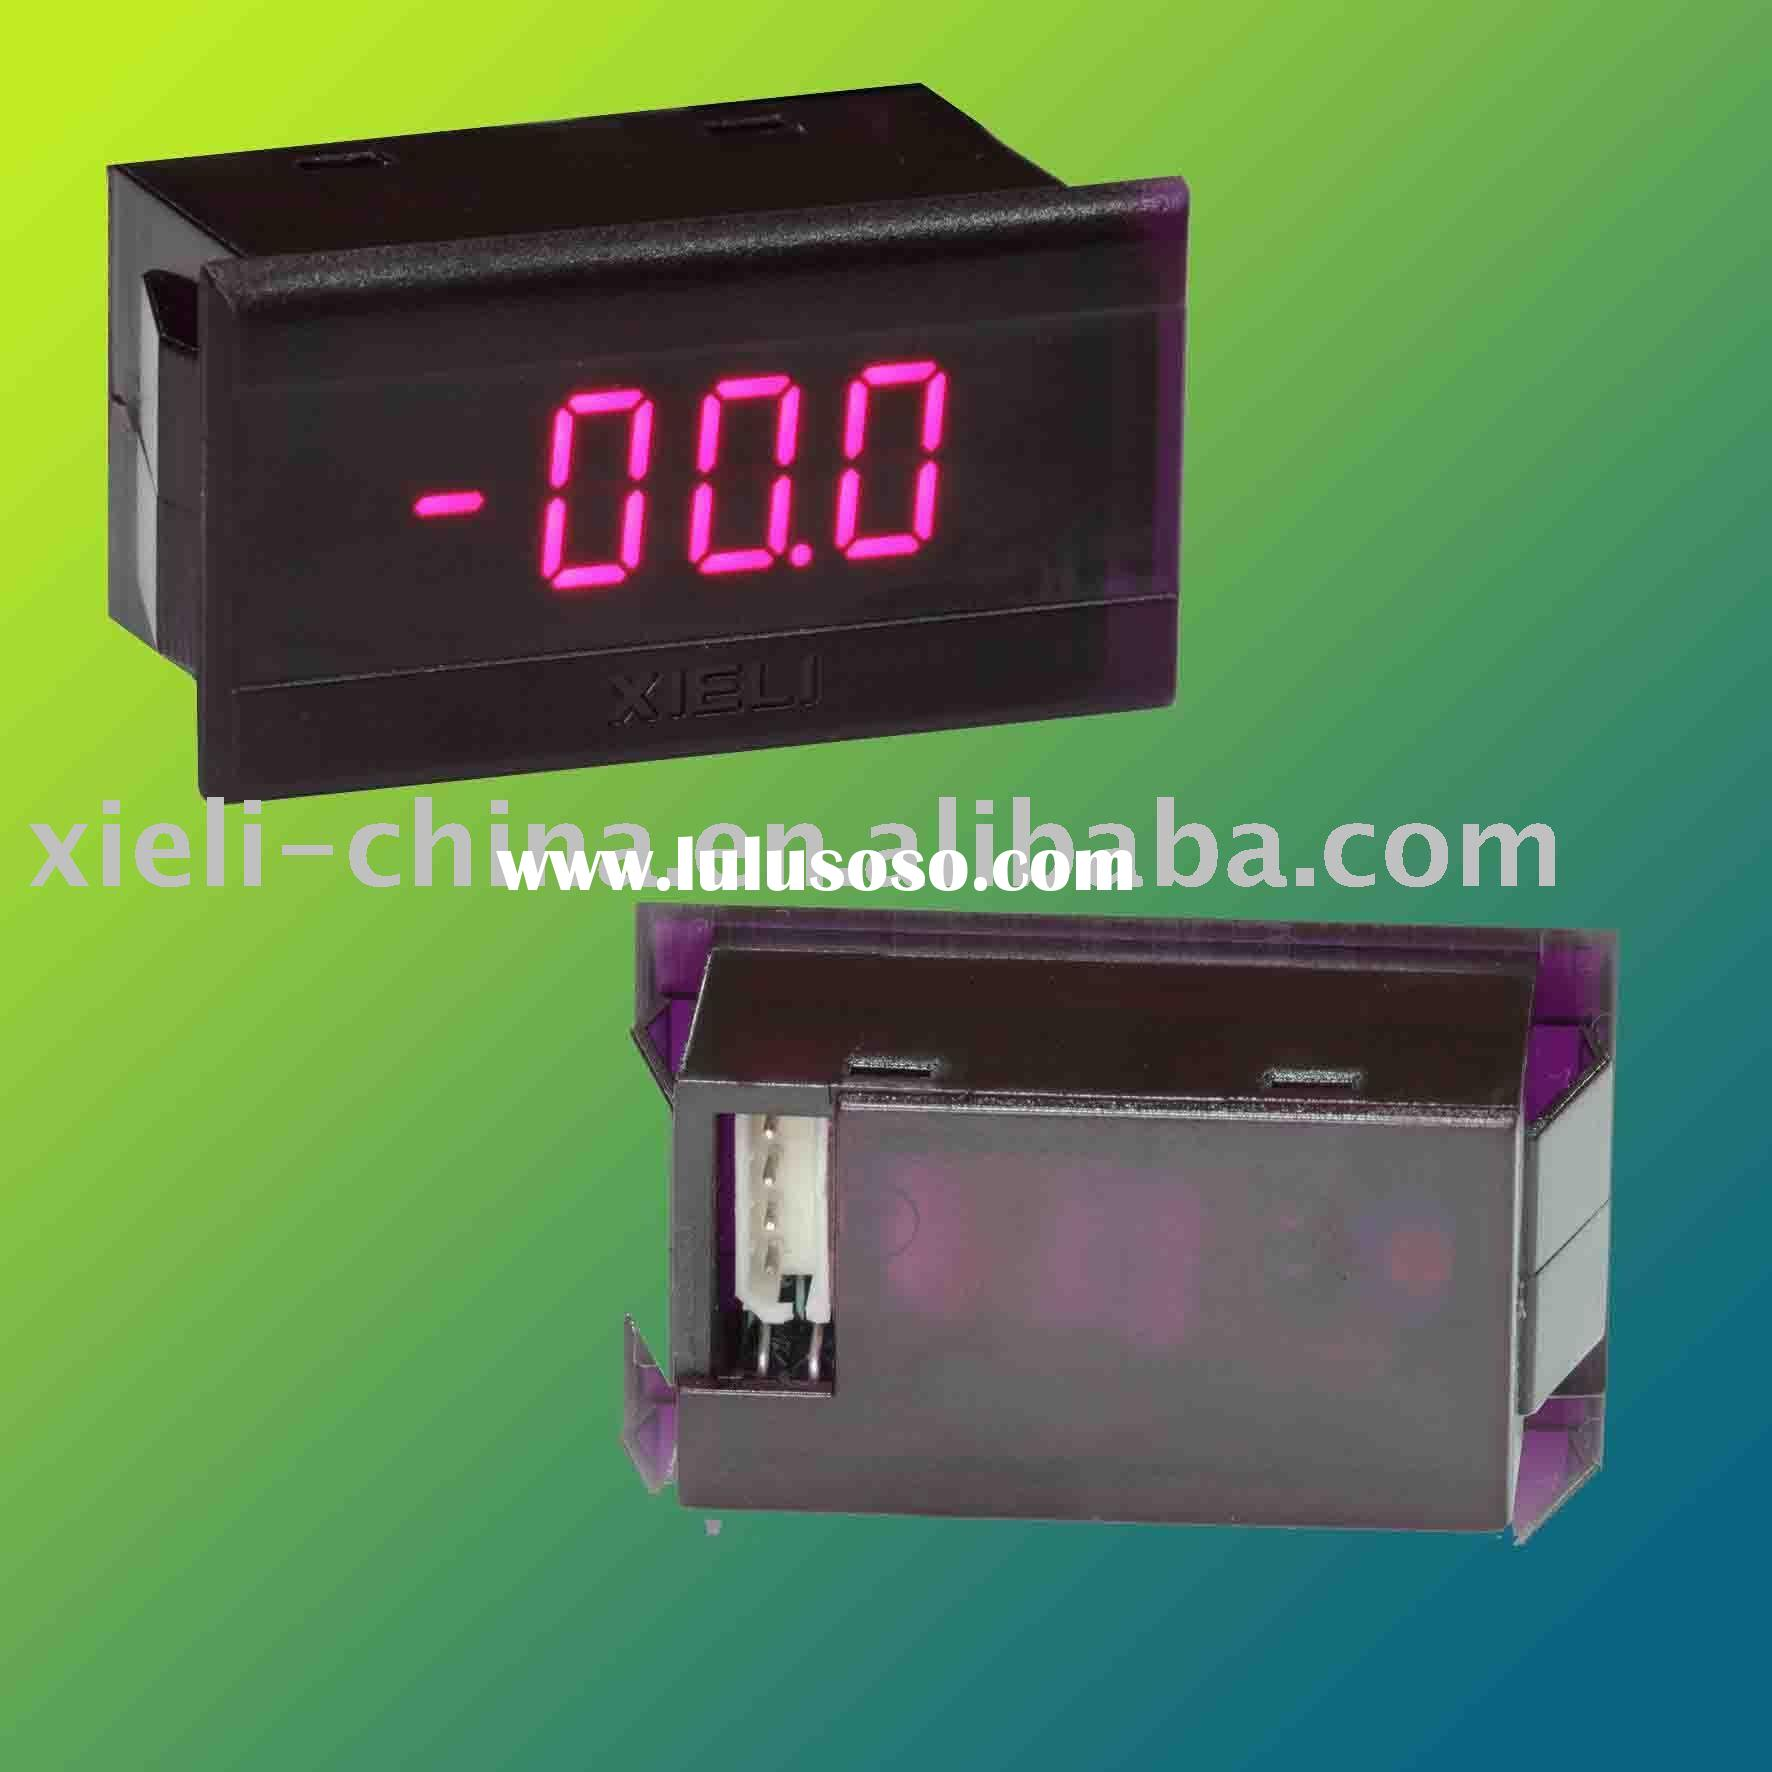 digital voltage meter for monitor the battery and electrical system in Car, RV, Boat, Motorcycle, So